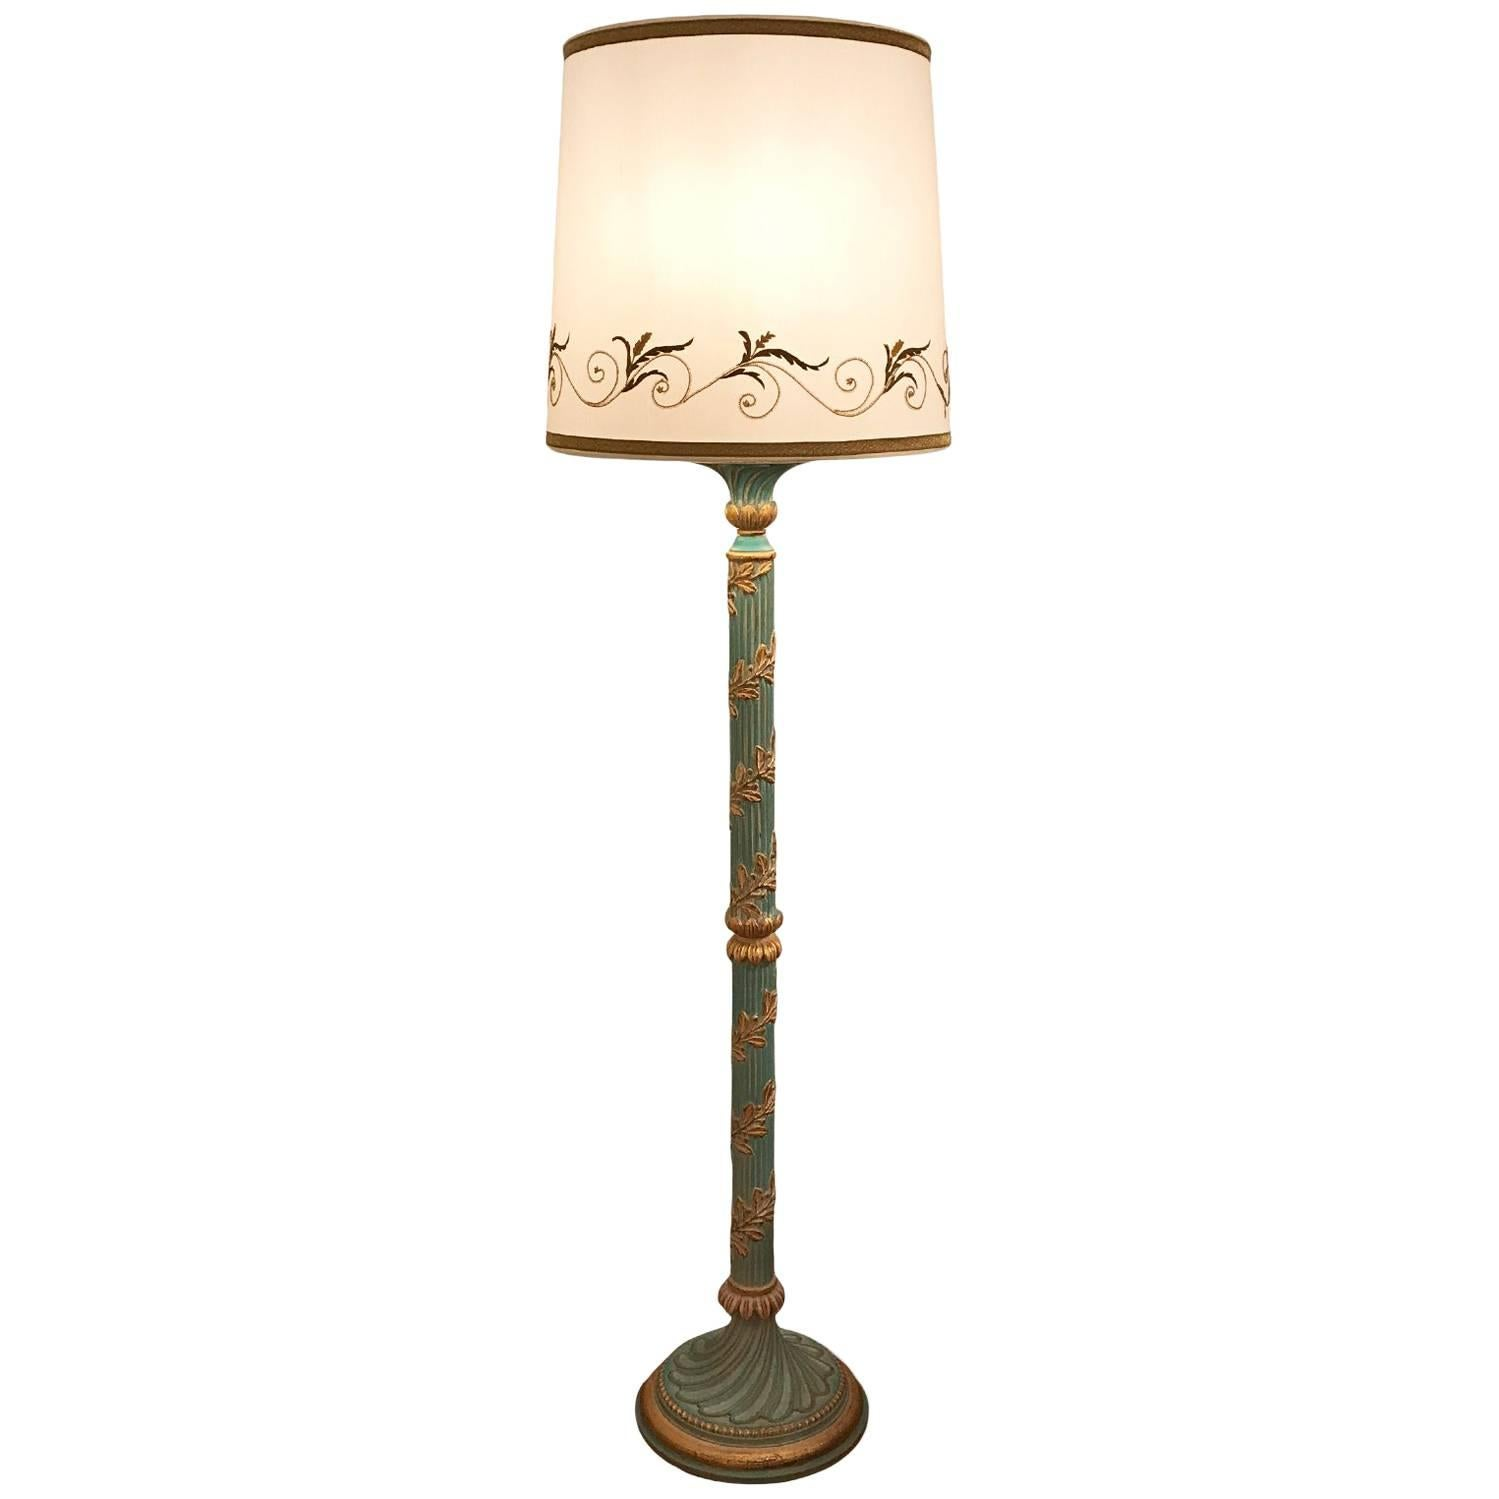 Italian Chelini Firenze Green Turquoise Floor-Lamp Base with Gilt Wood Elements